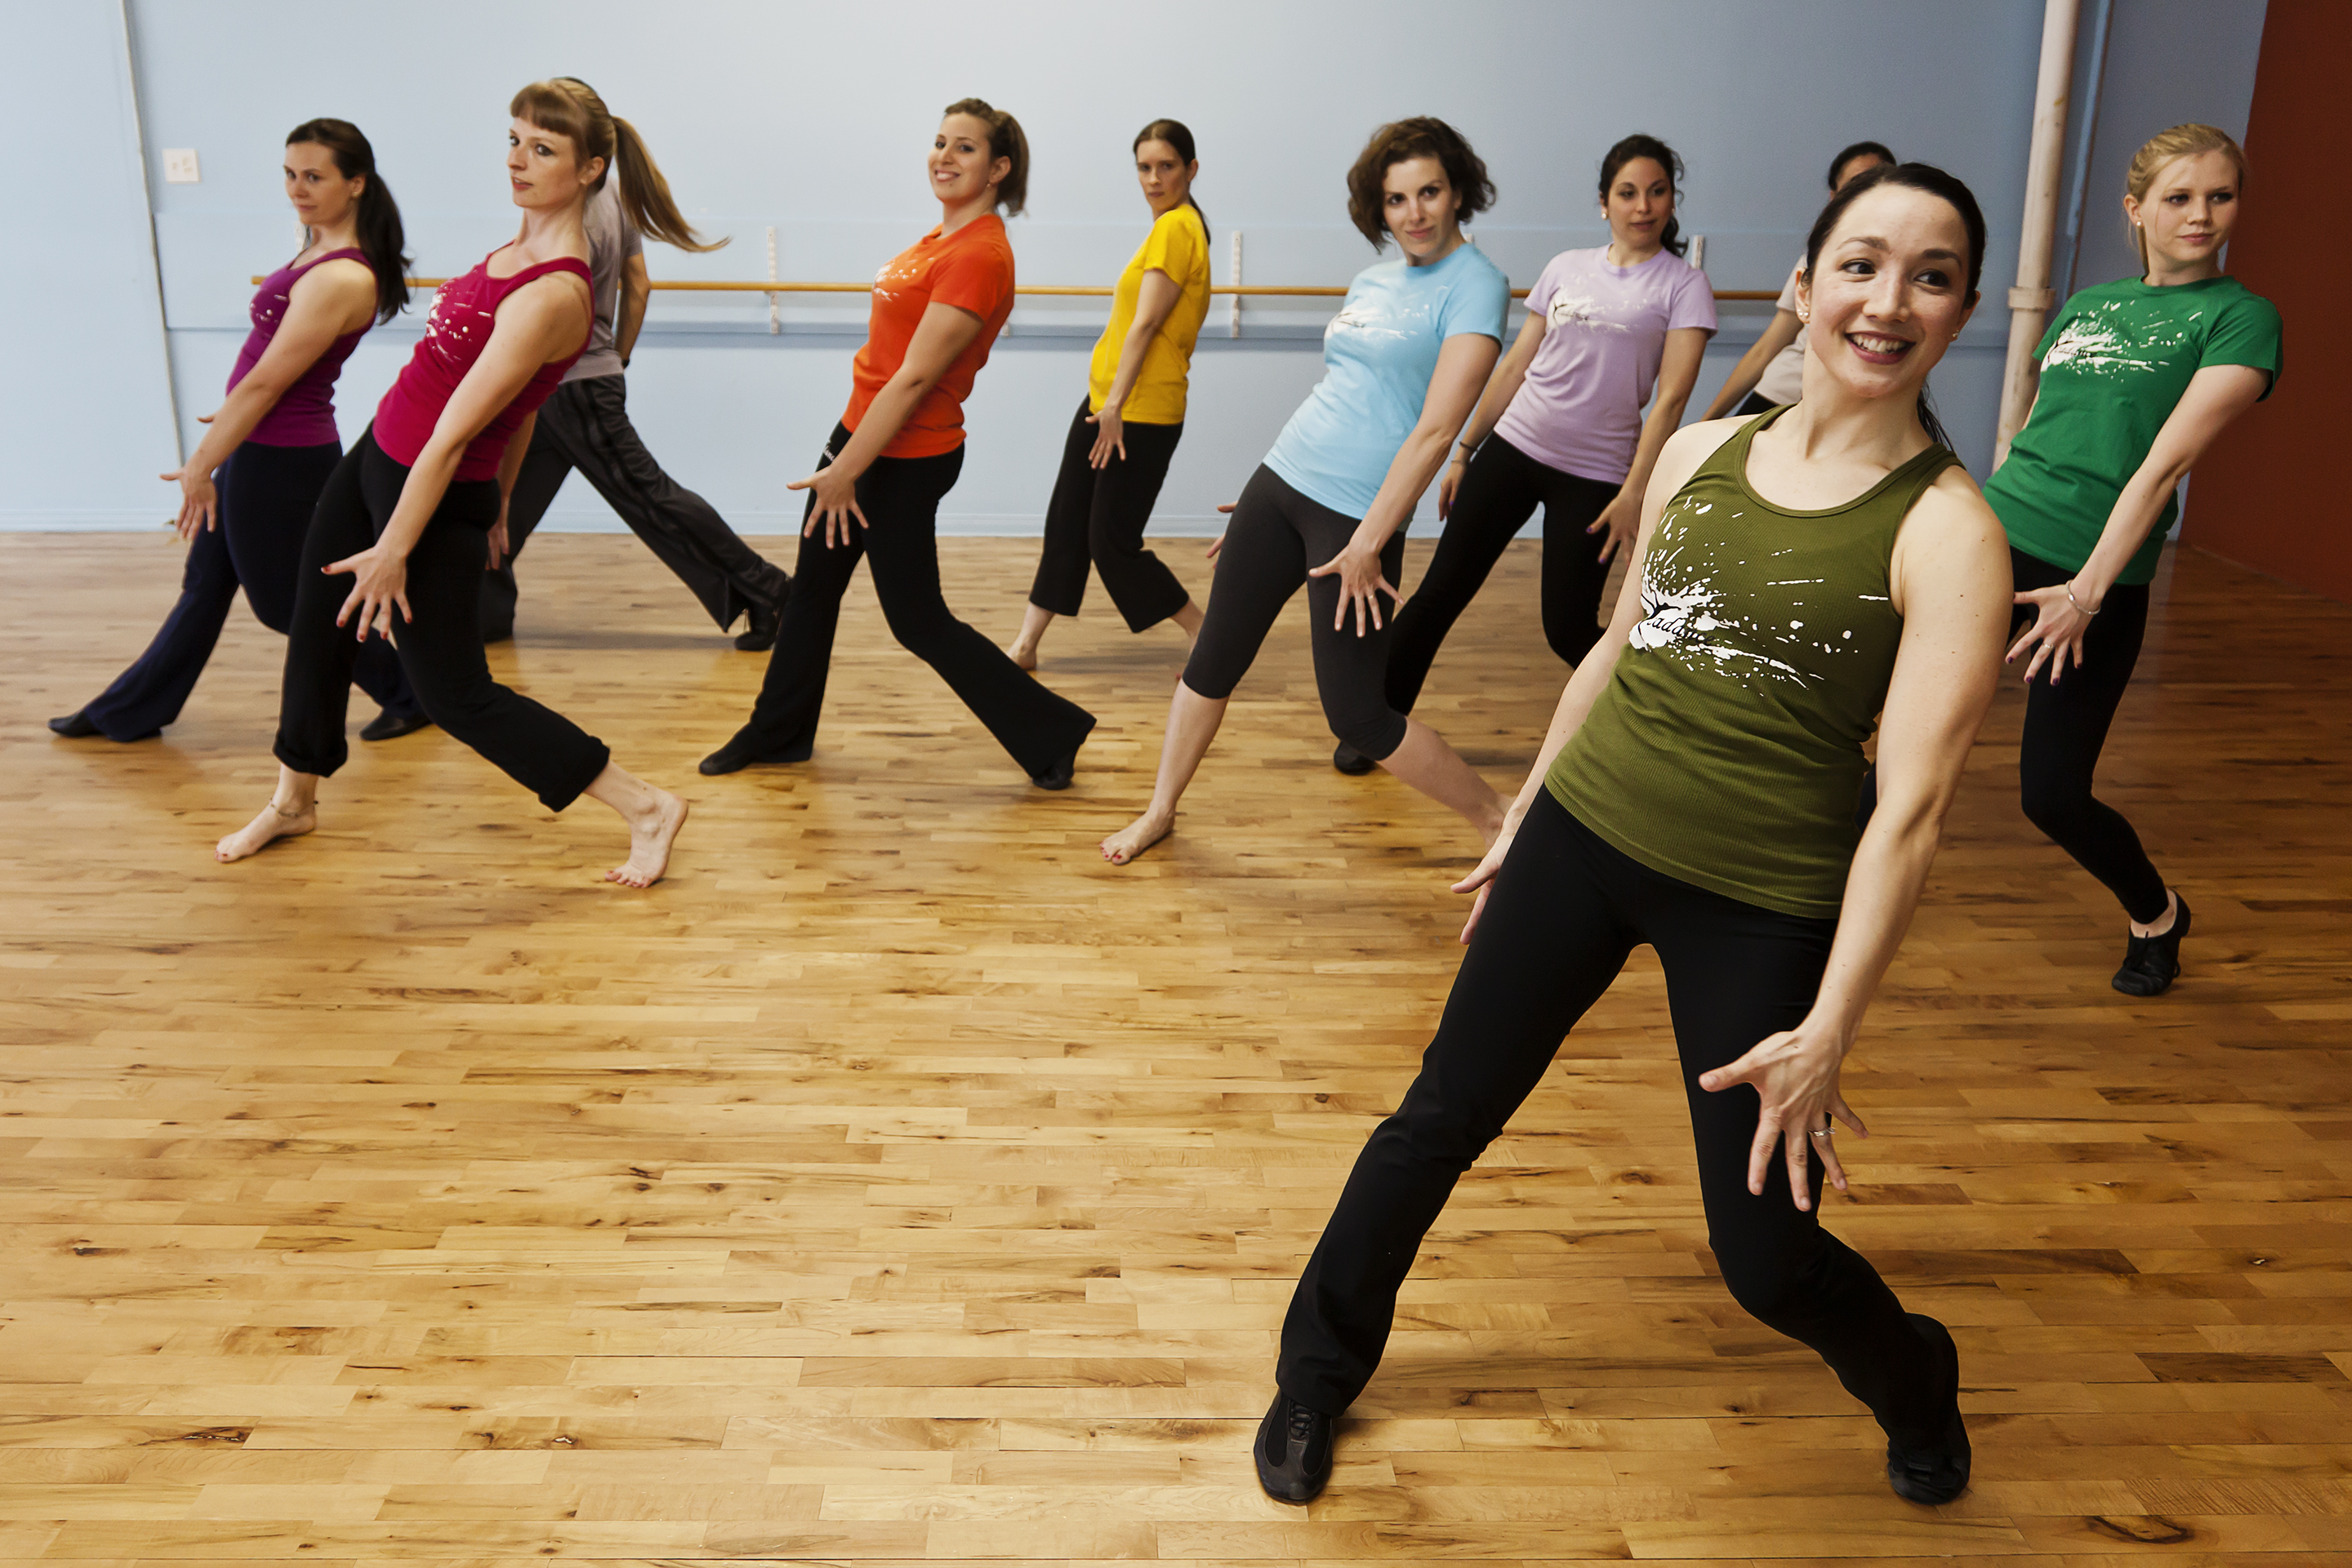 dance class Dance attack studios in sunnyvale & los gatos offers dance classes including: ballet, jazz, tap, breaking & more visit our site for schedules & more.